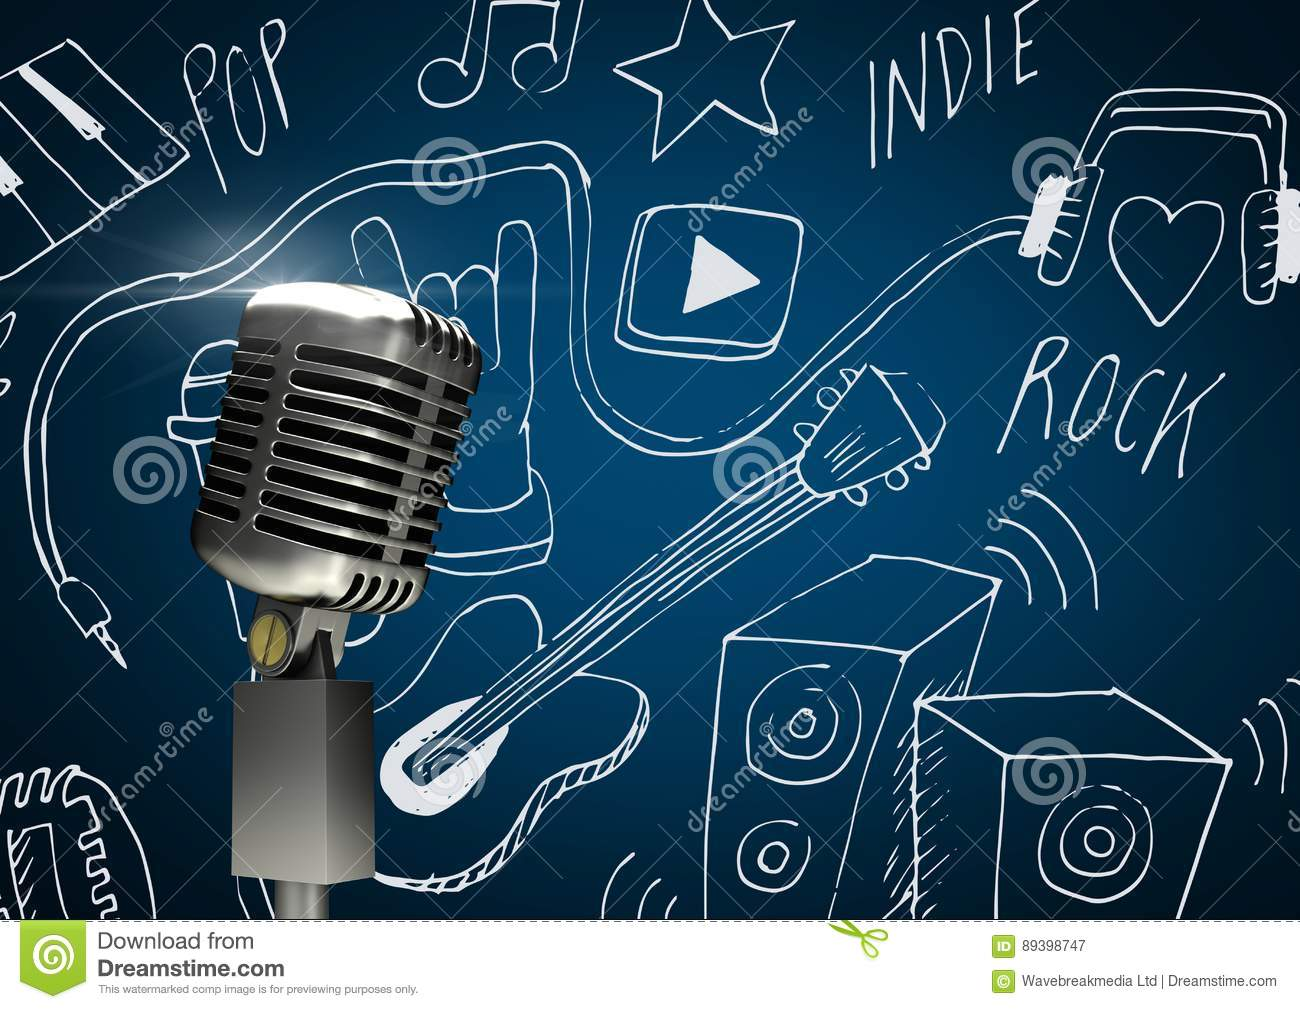 3d microphone against blue background with music icons drawings